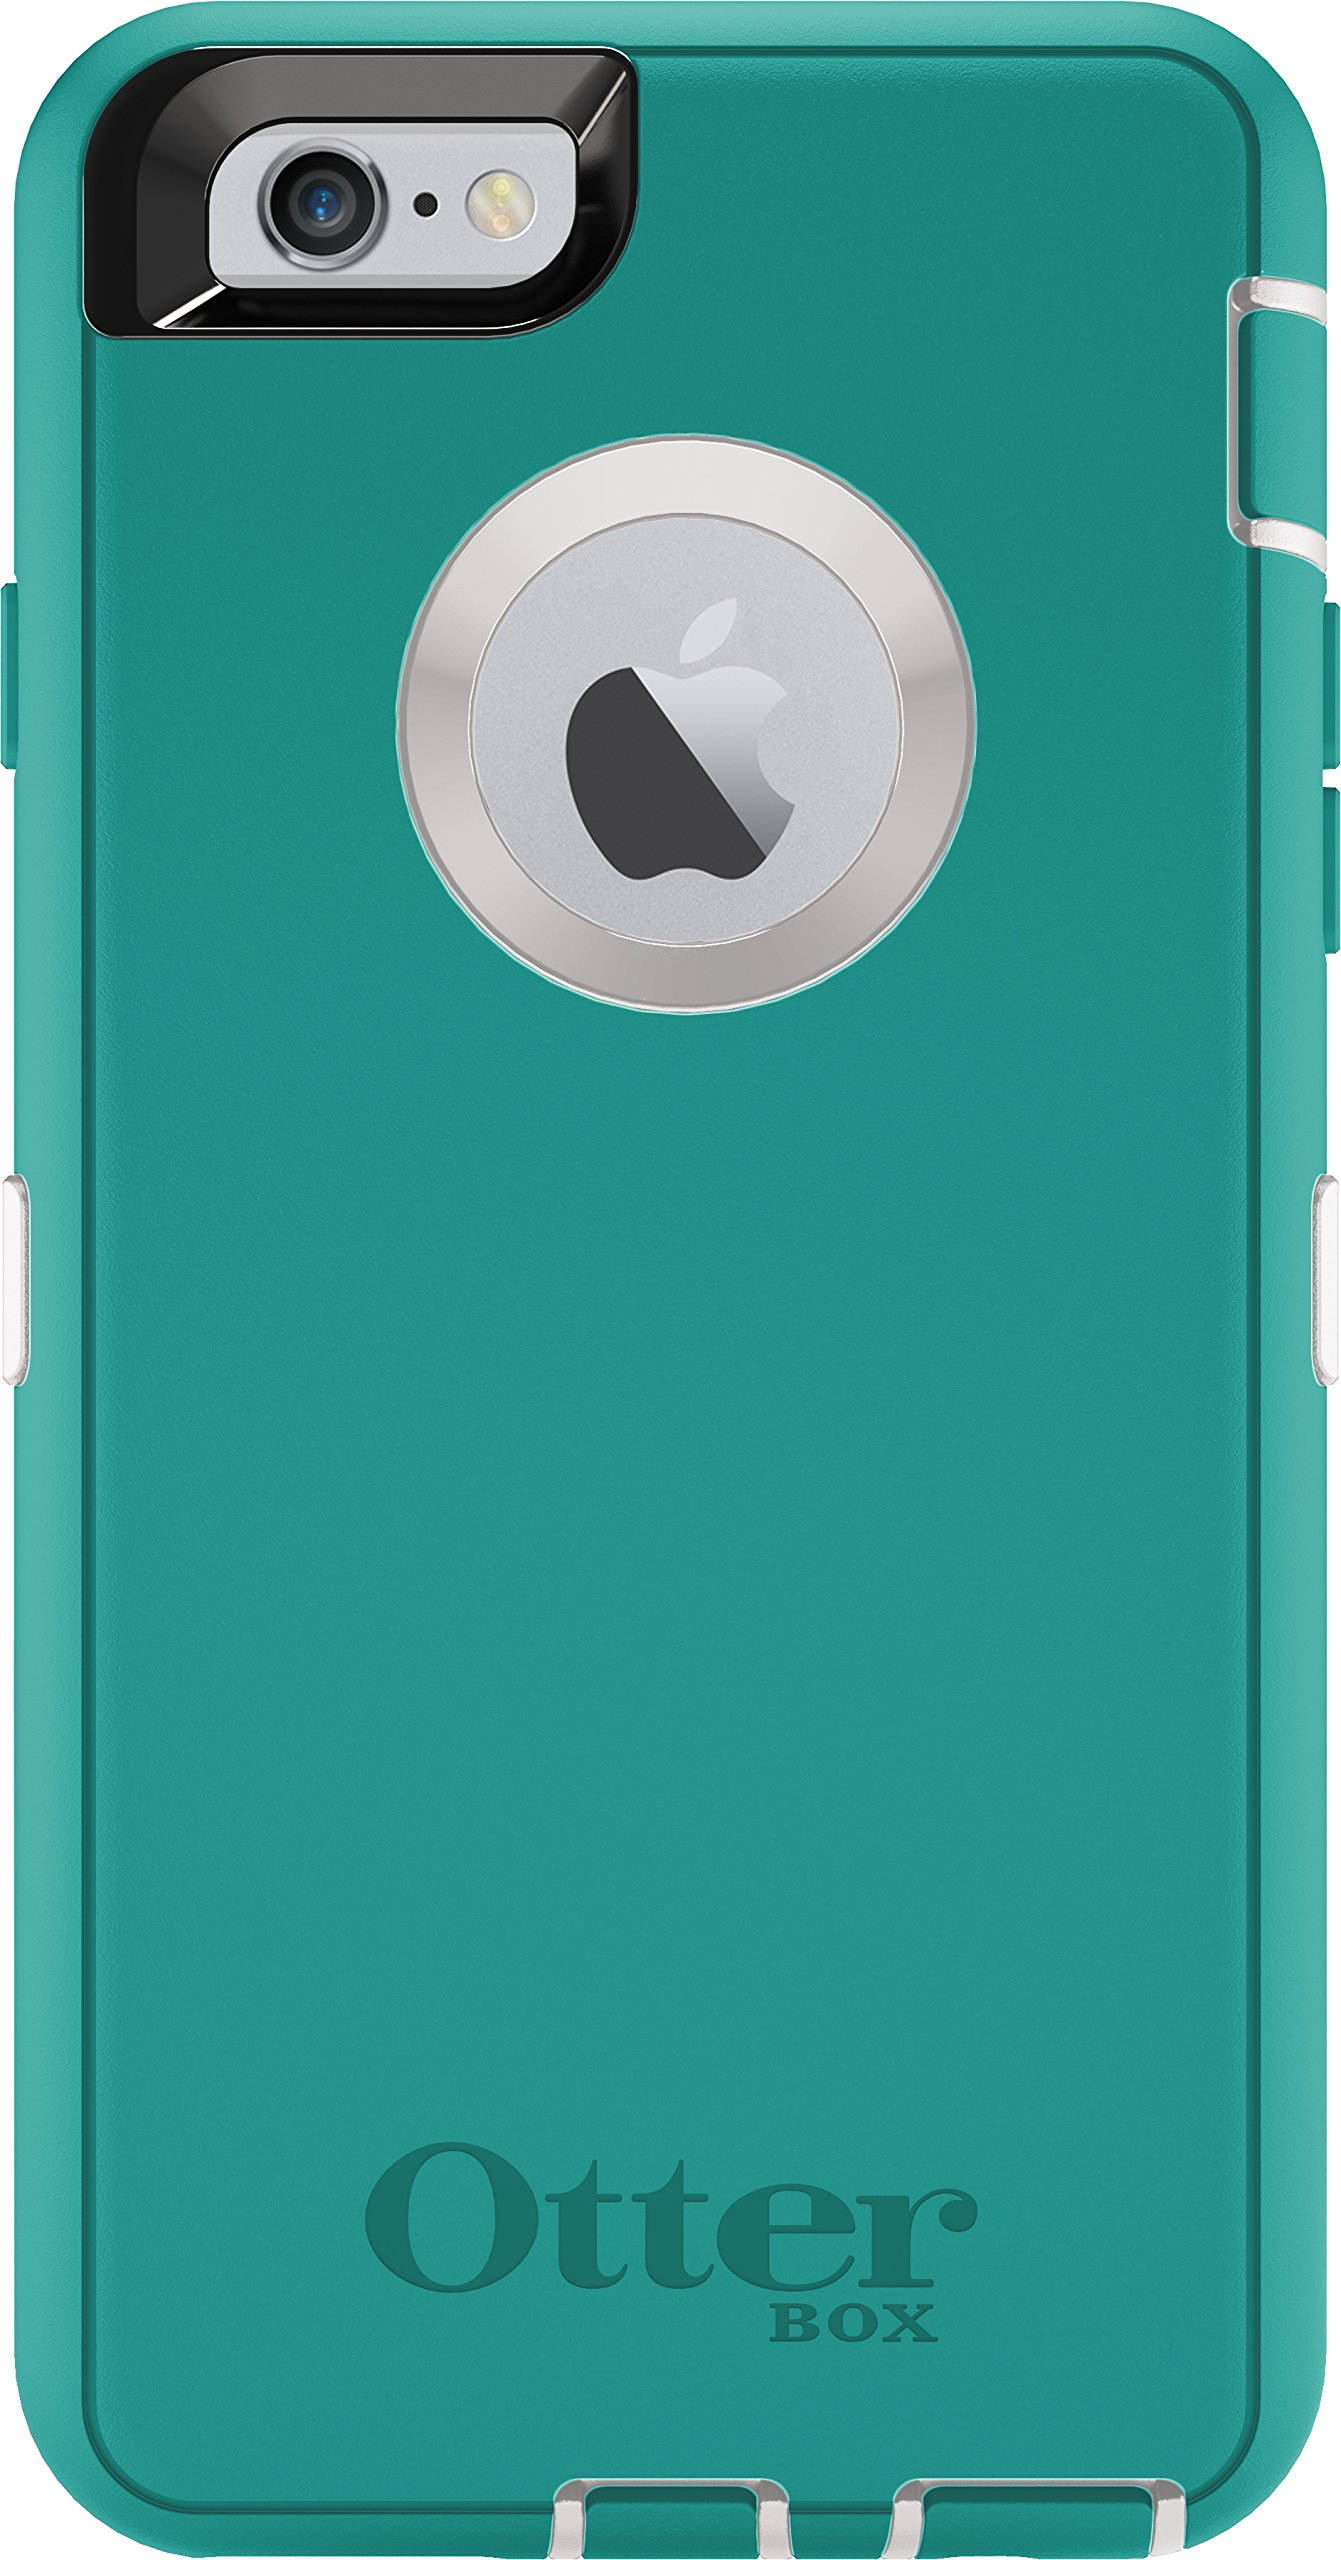 OtterBox DEFENDER iPhone 6/6s Case - Retail Packaging - SEACREST (WHISPER WHITE/LIGHT TEAL) by OtterBox (Image #1)